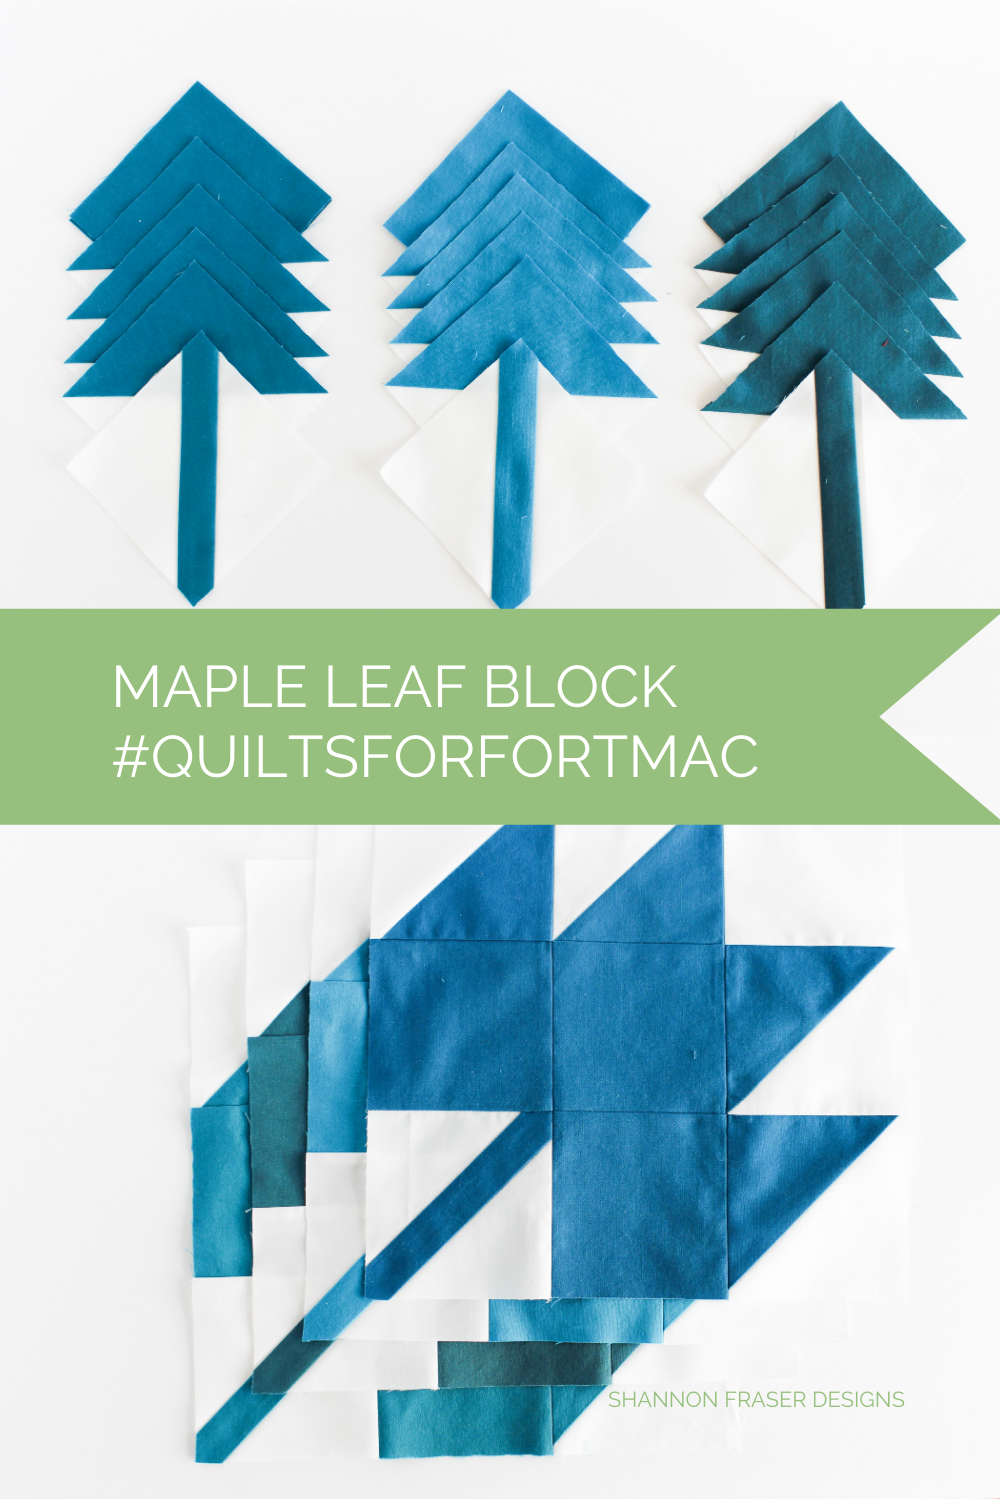 3 stacks of maple leaf quilt blocks in shades of blue | #quiltsforfortmac | Shannon Fraser Designs